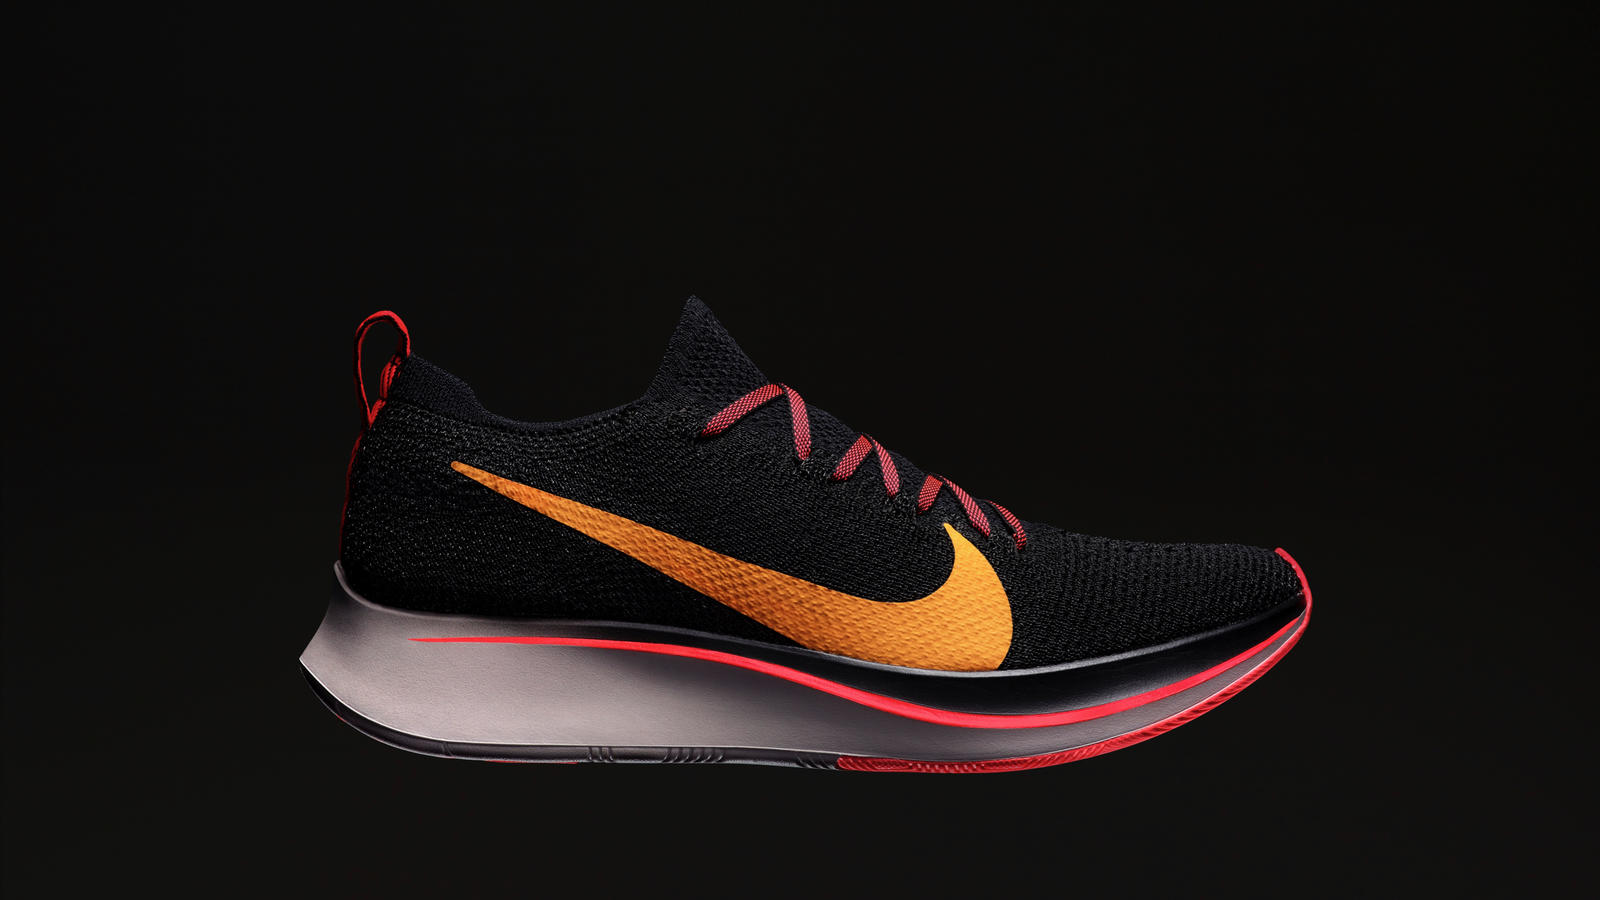 Nike Zoom Fly Nike Unveils the Zoom Fly Flyknit, Gets Updated with Carbon Fiber ...